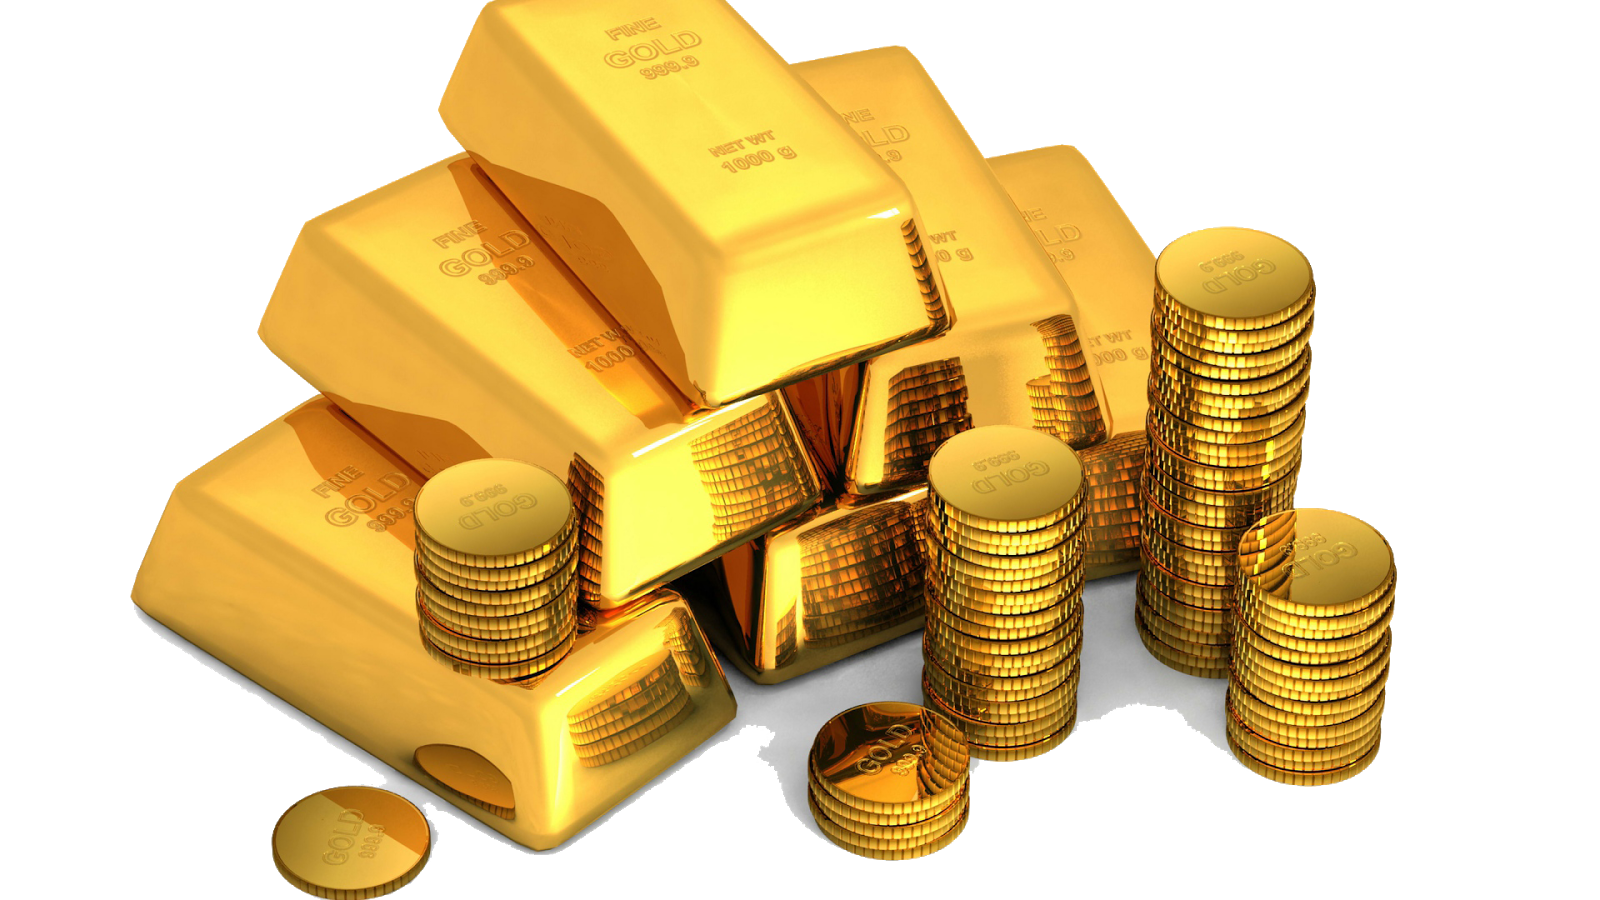 gold_bullion_coins_white_background_money_80253_1920x1080 - Gold HD PNG